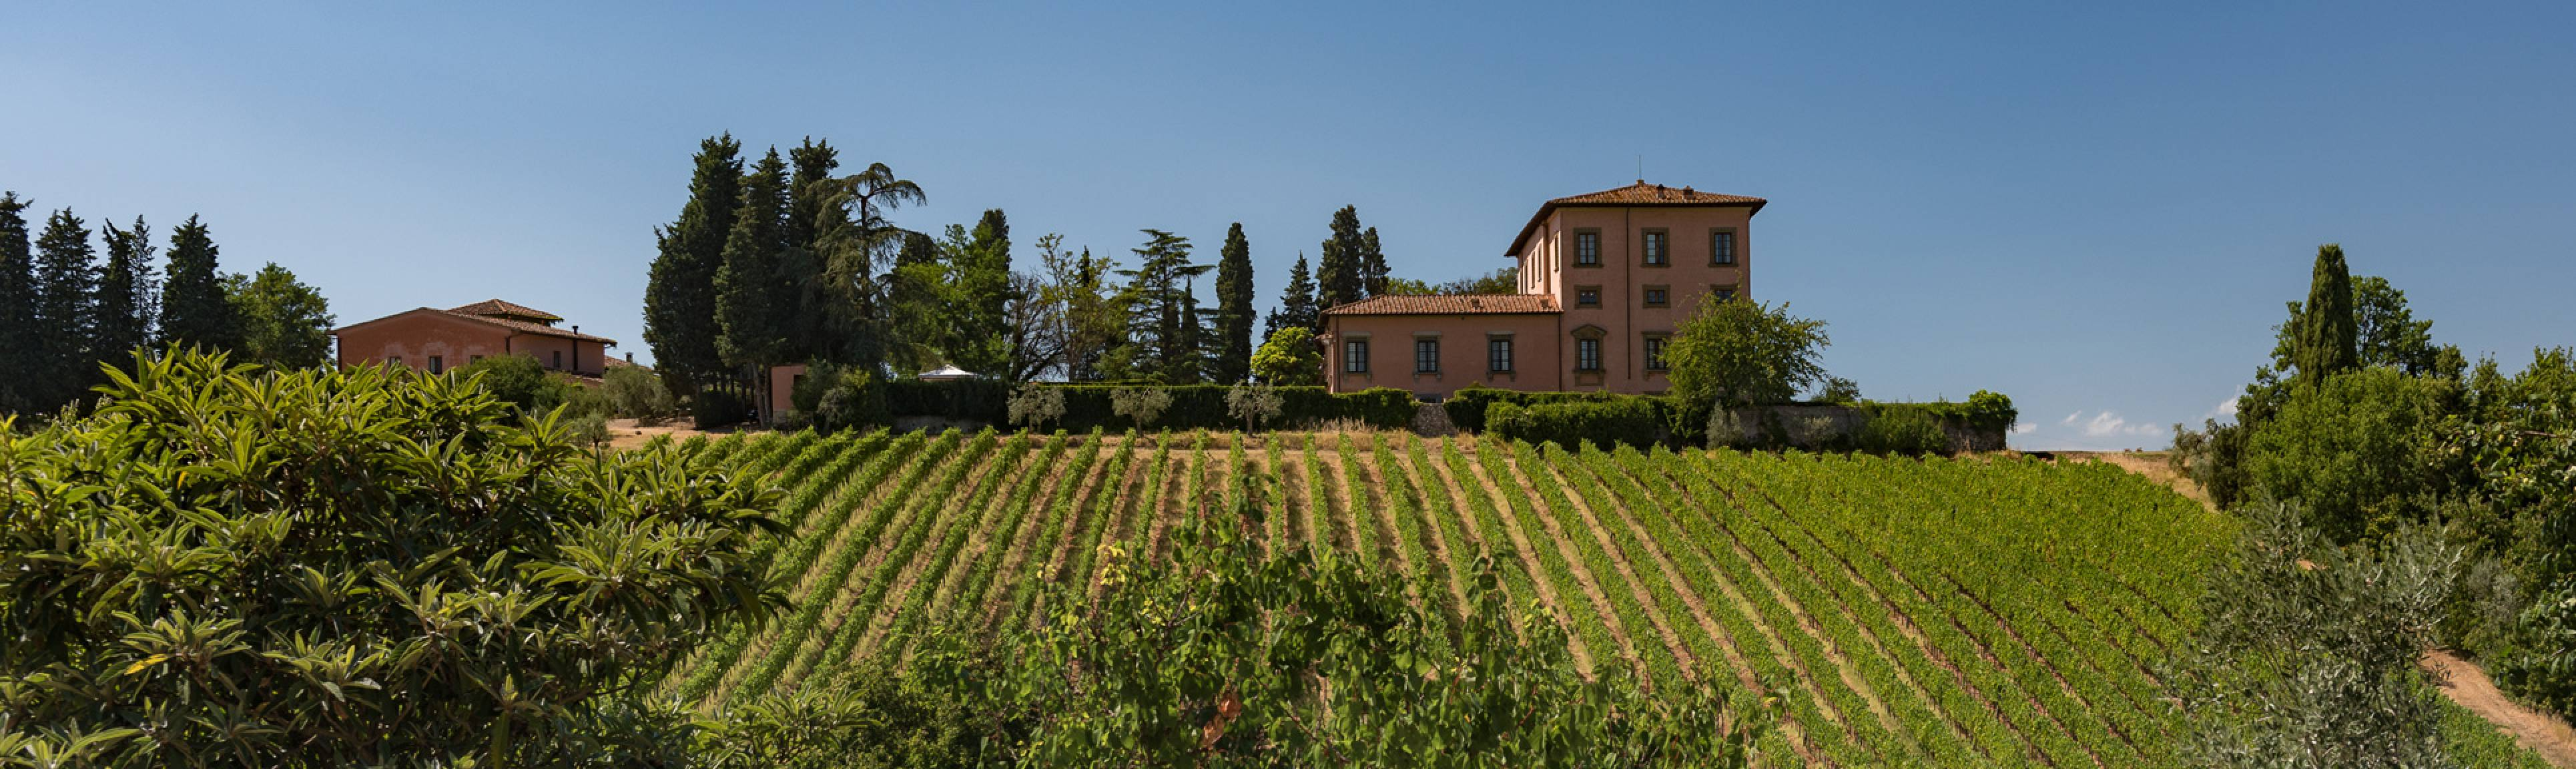 View of Tuscan Villa overlooking vineyards